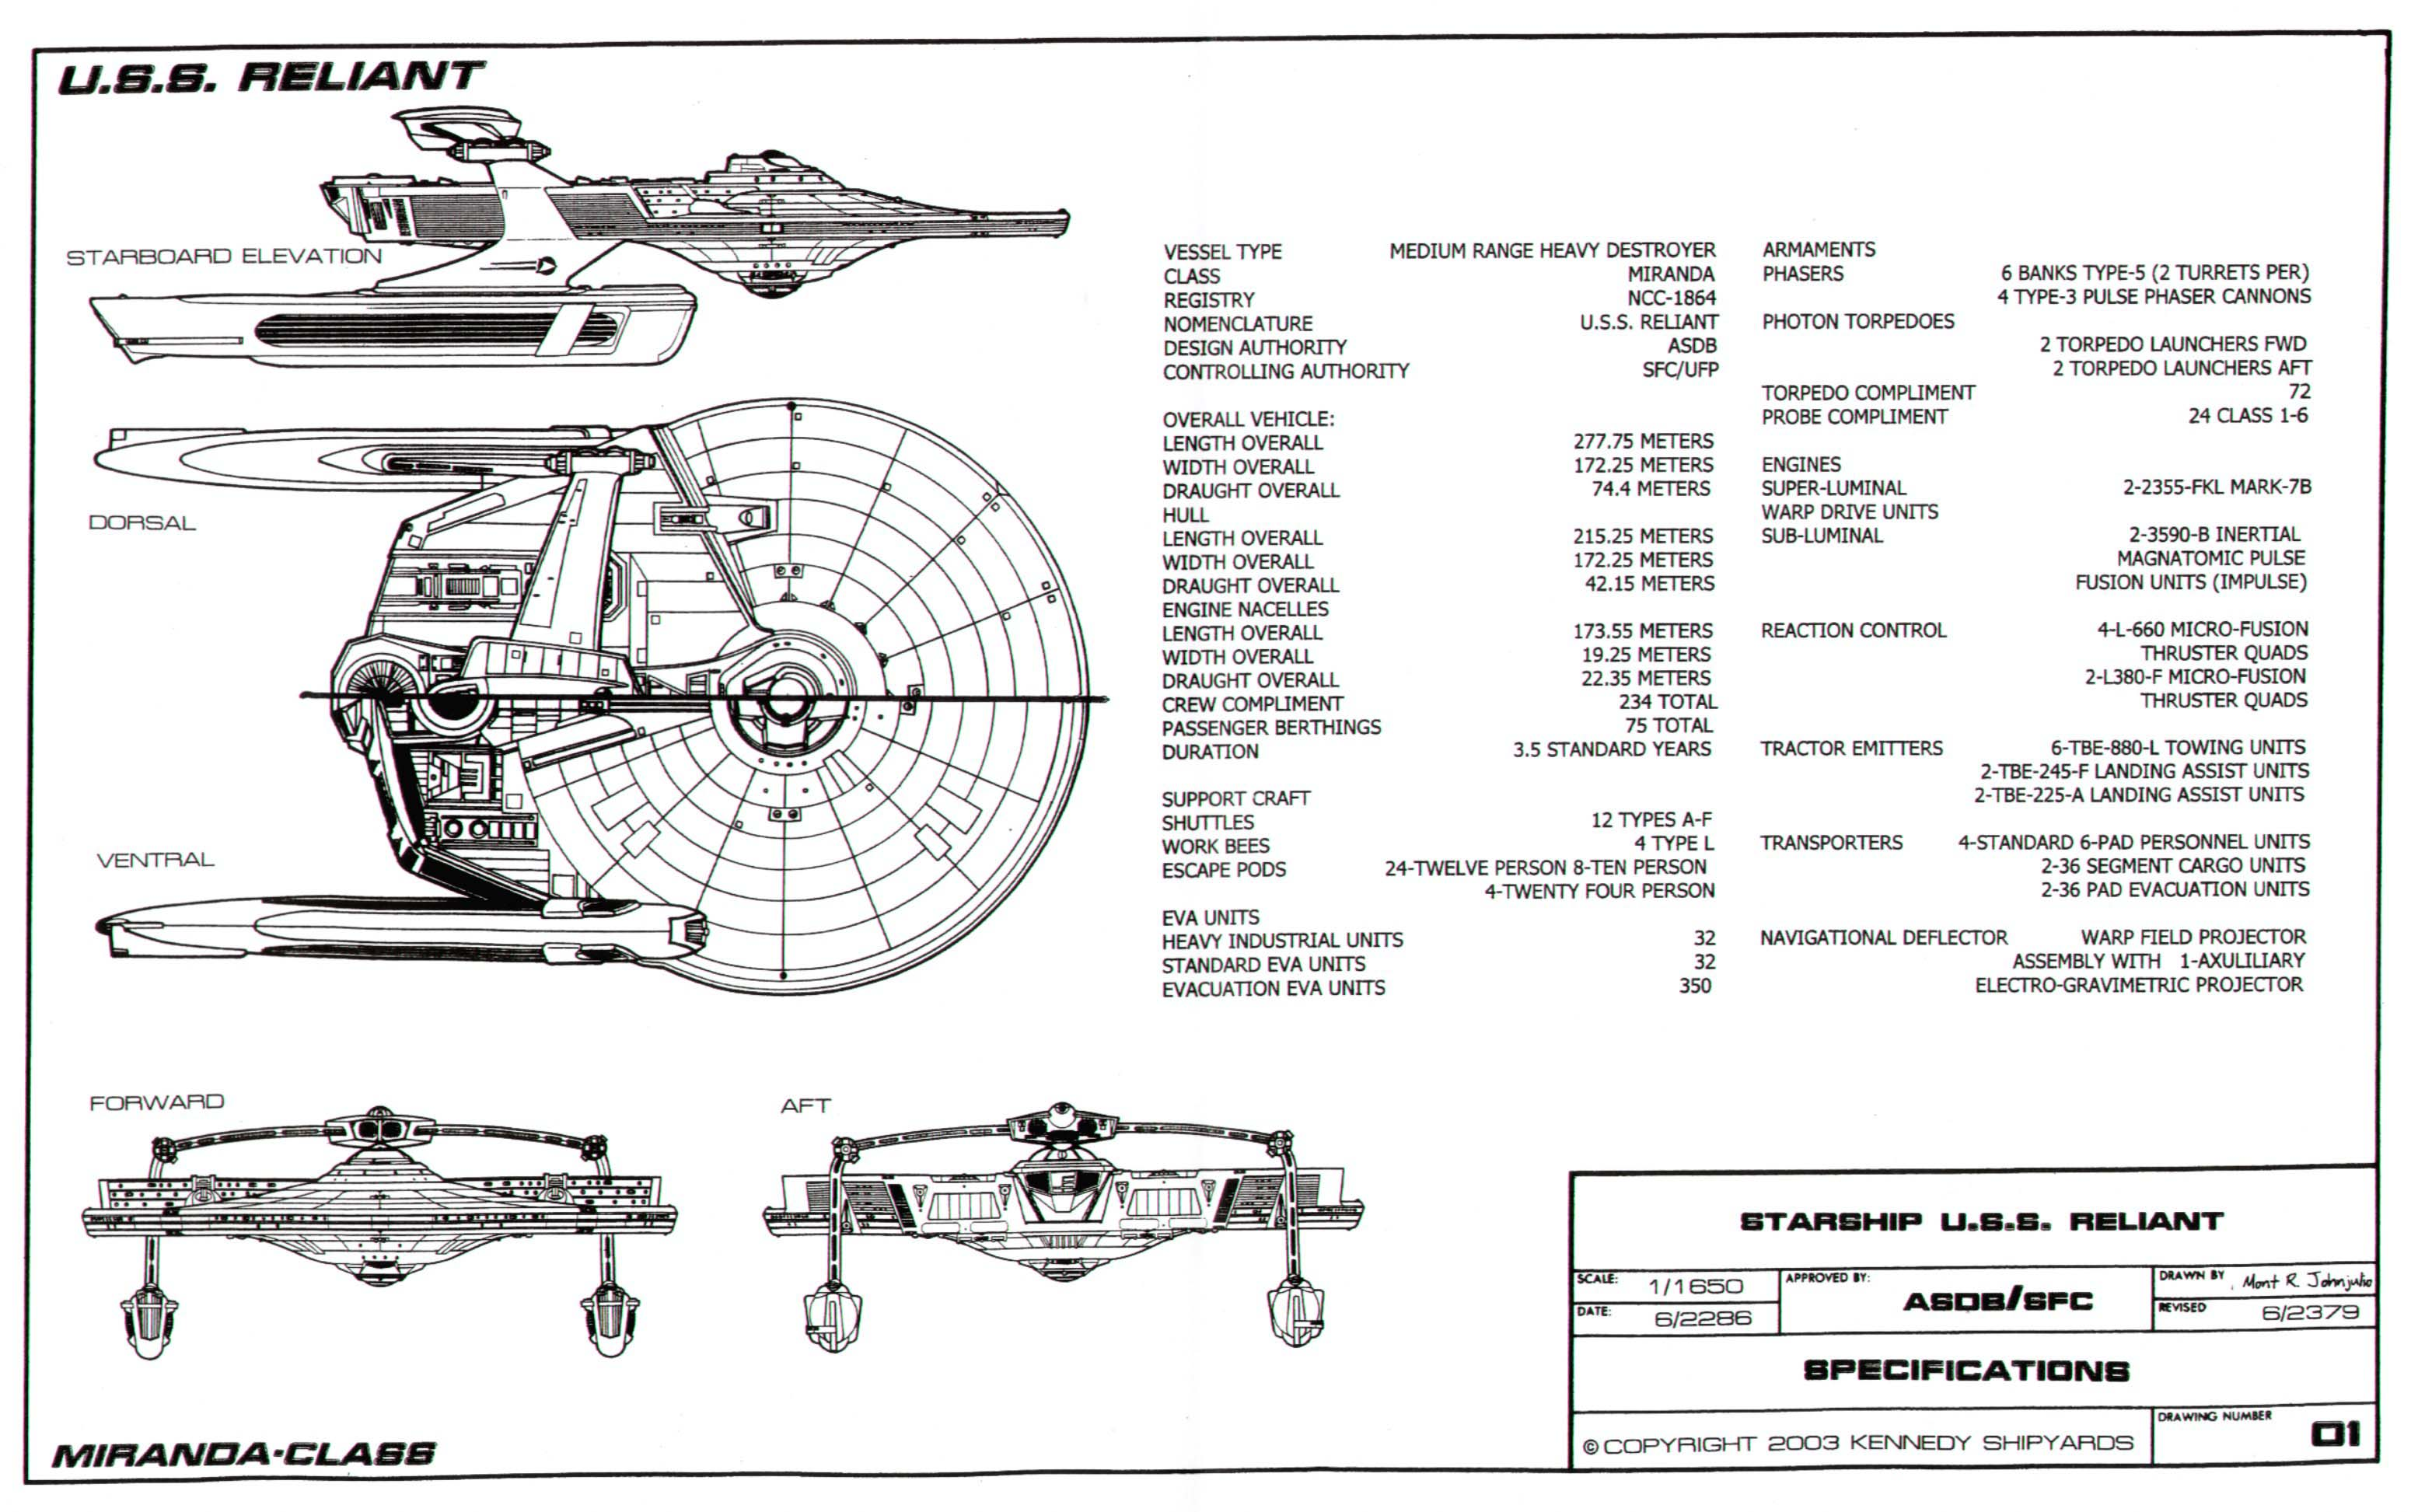 How Did Ships Like The Uss Reliant Travel At Warp Without